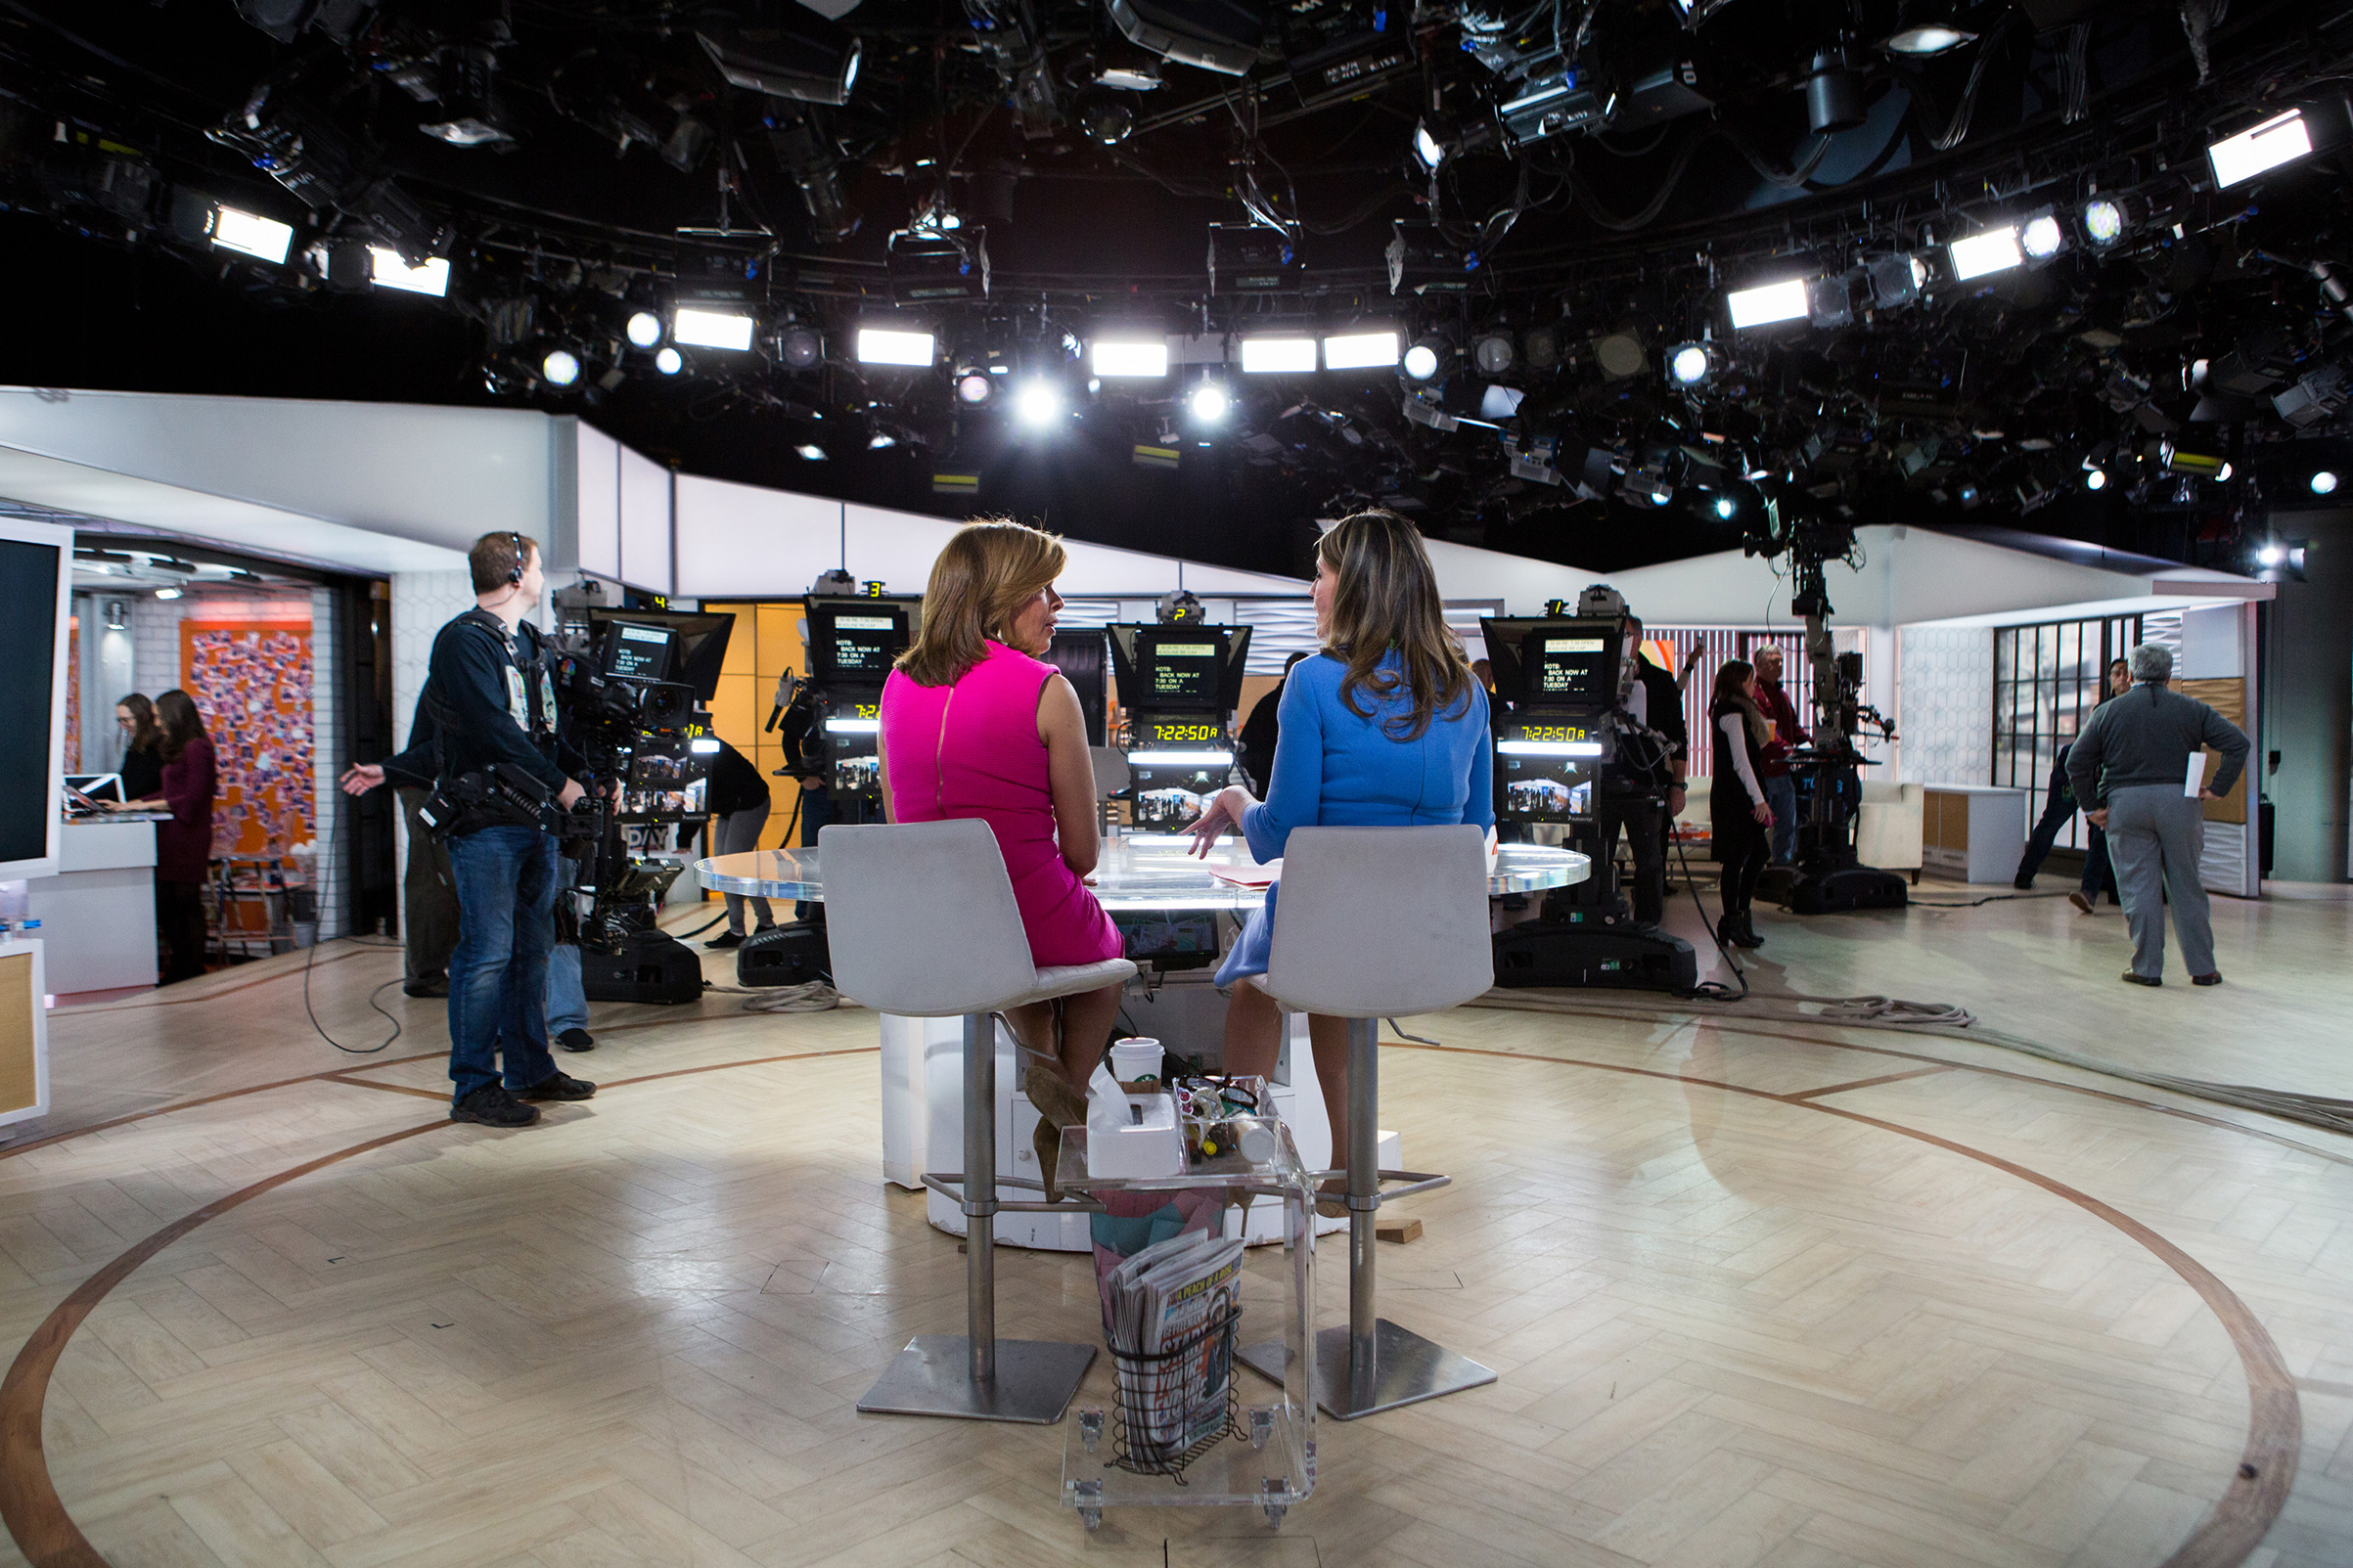 Savannah Guthrie and Hoda Kotb on Tuesday, January 2, 2018.